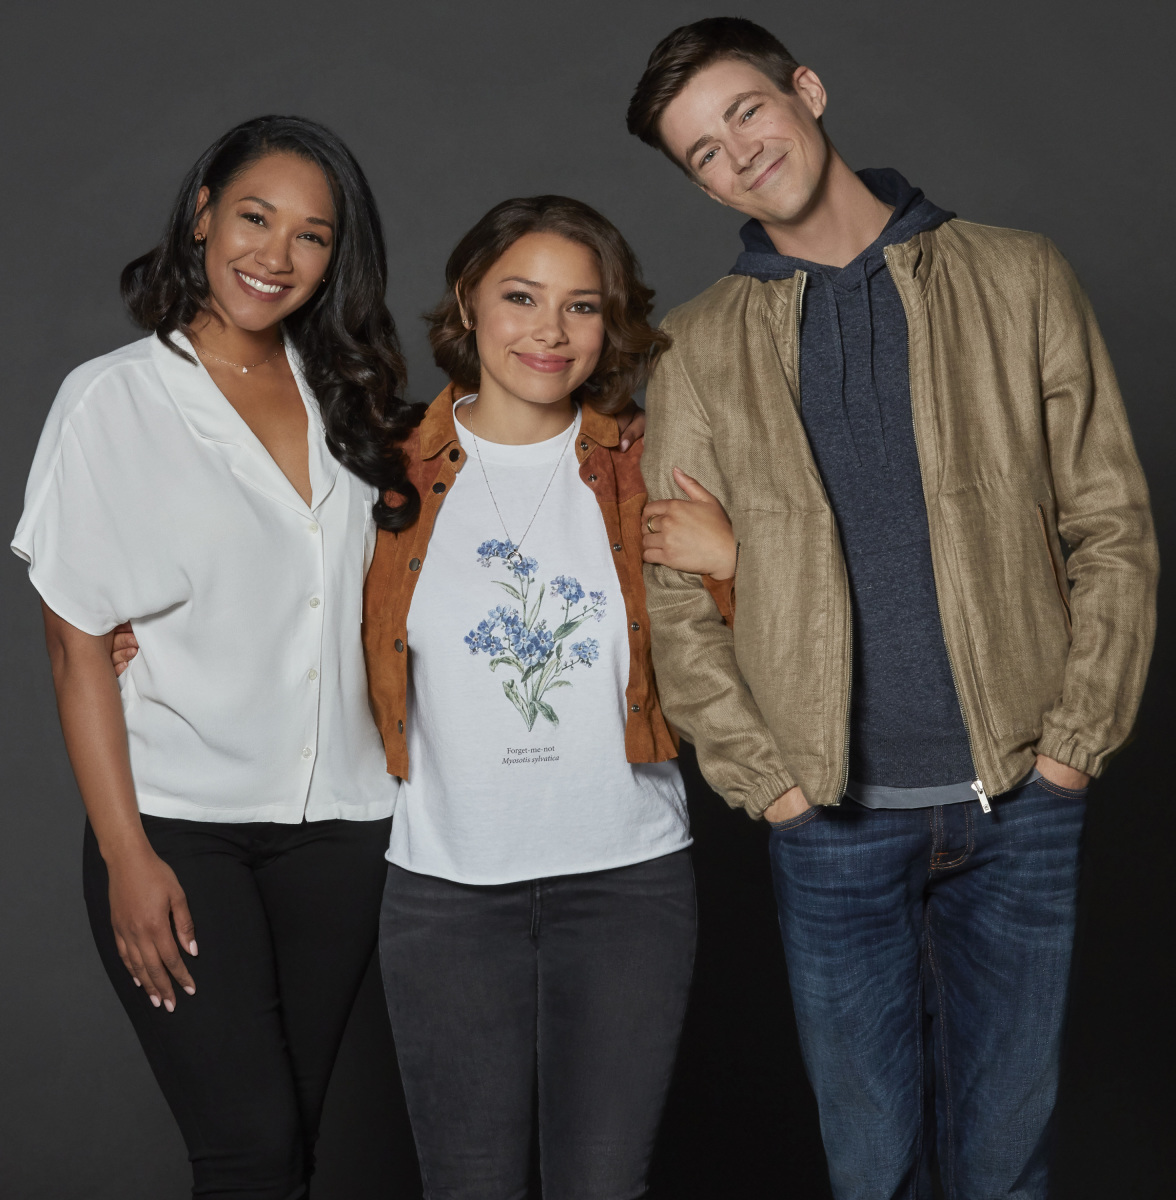 The Flash's Candice Patton, Jessica Parker Kennedy and Grant Gustin